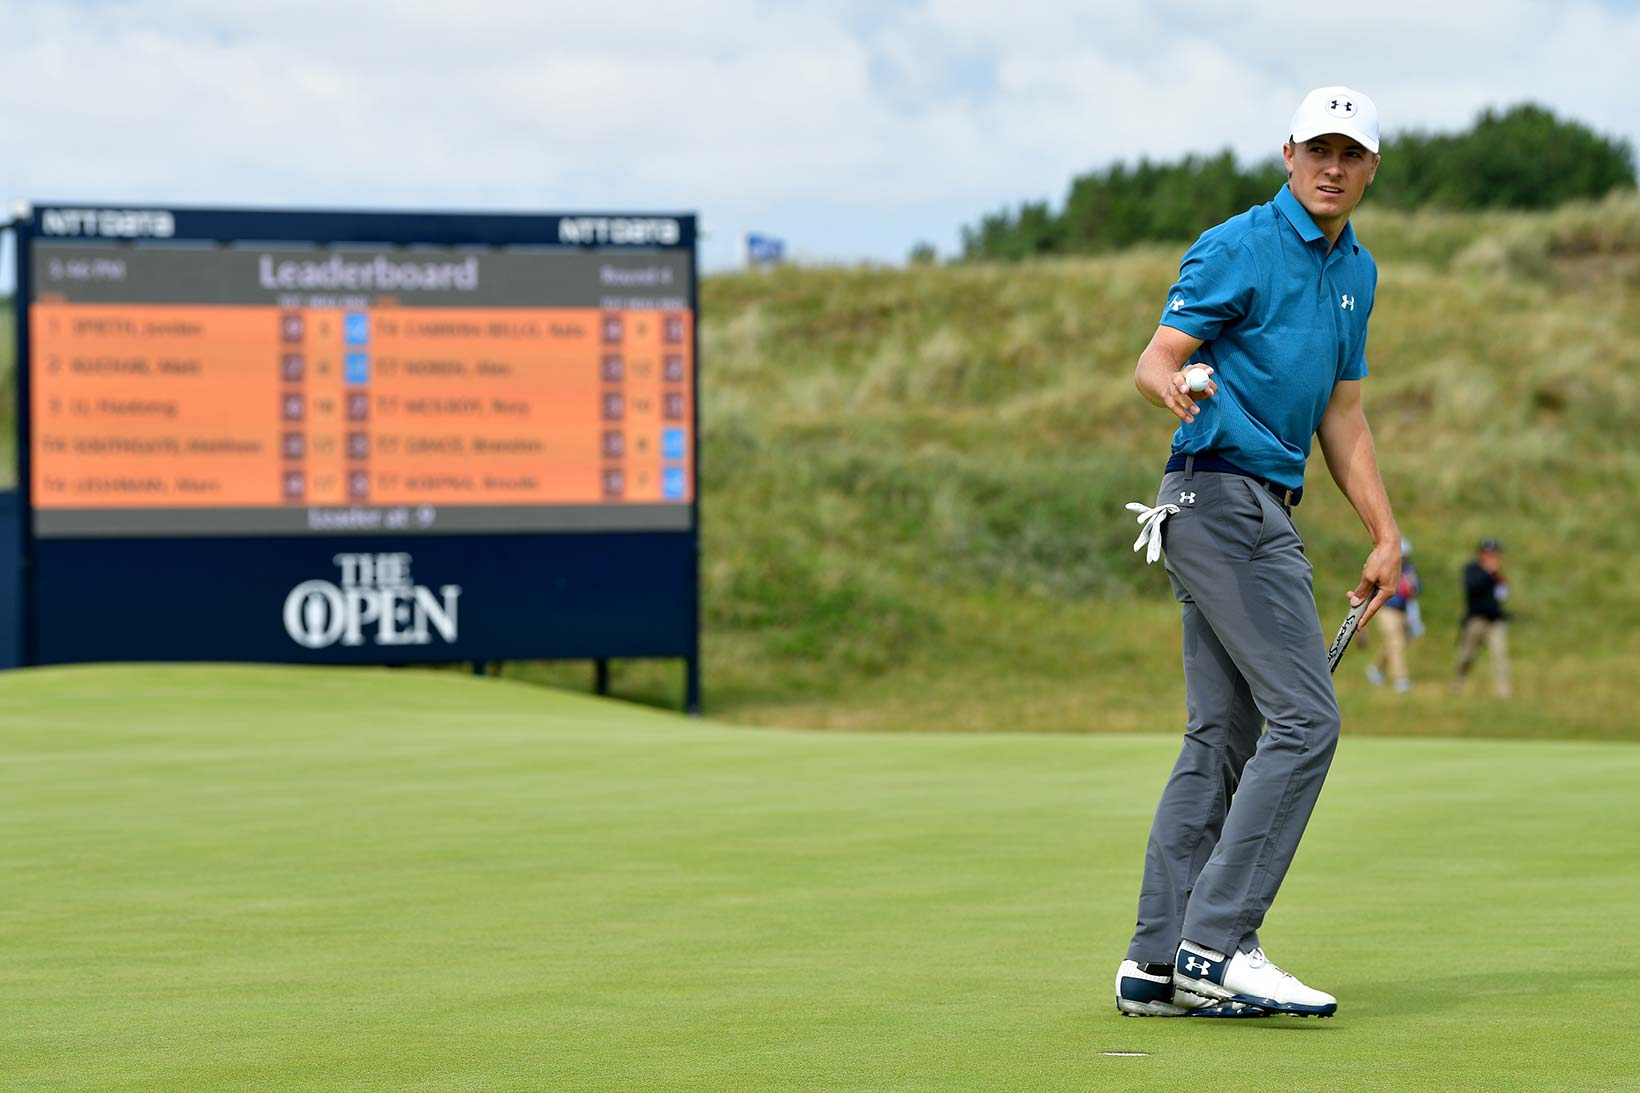 2017 Open Championship: Final Round - Jordan Acknowledges the Crowd on No. 6